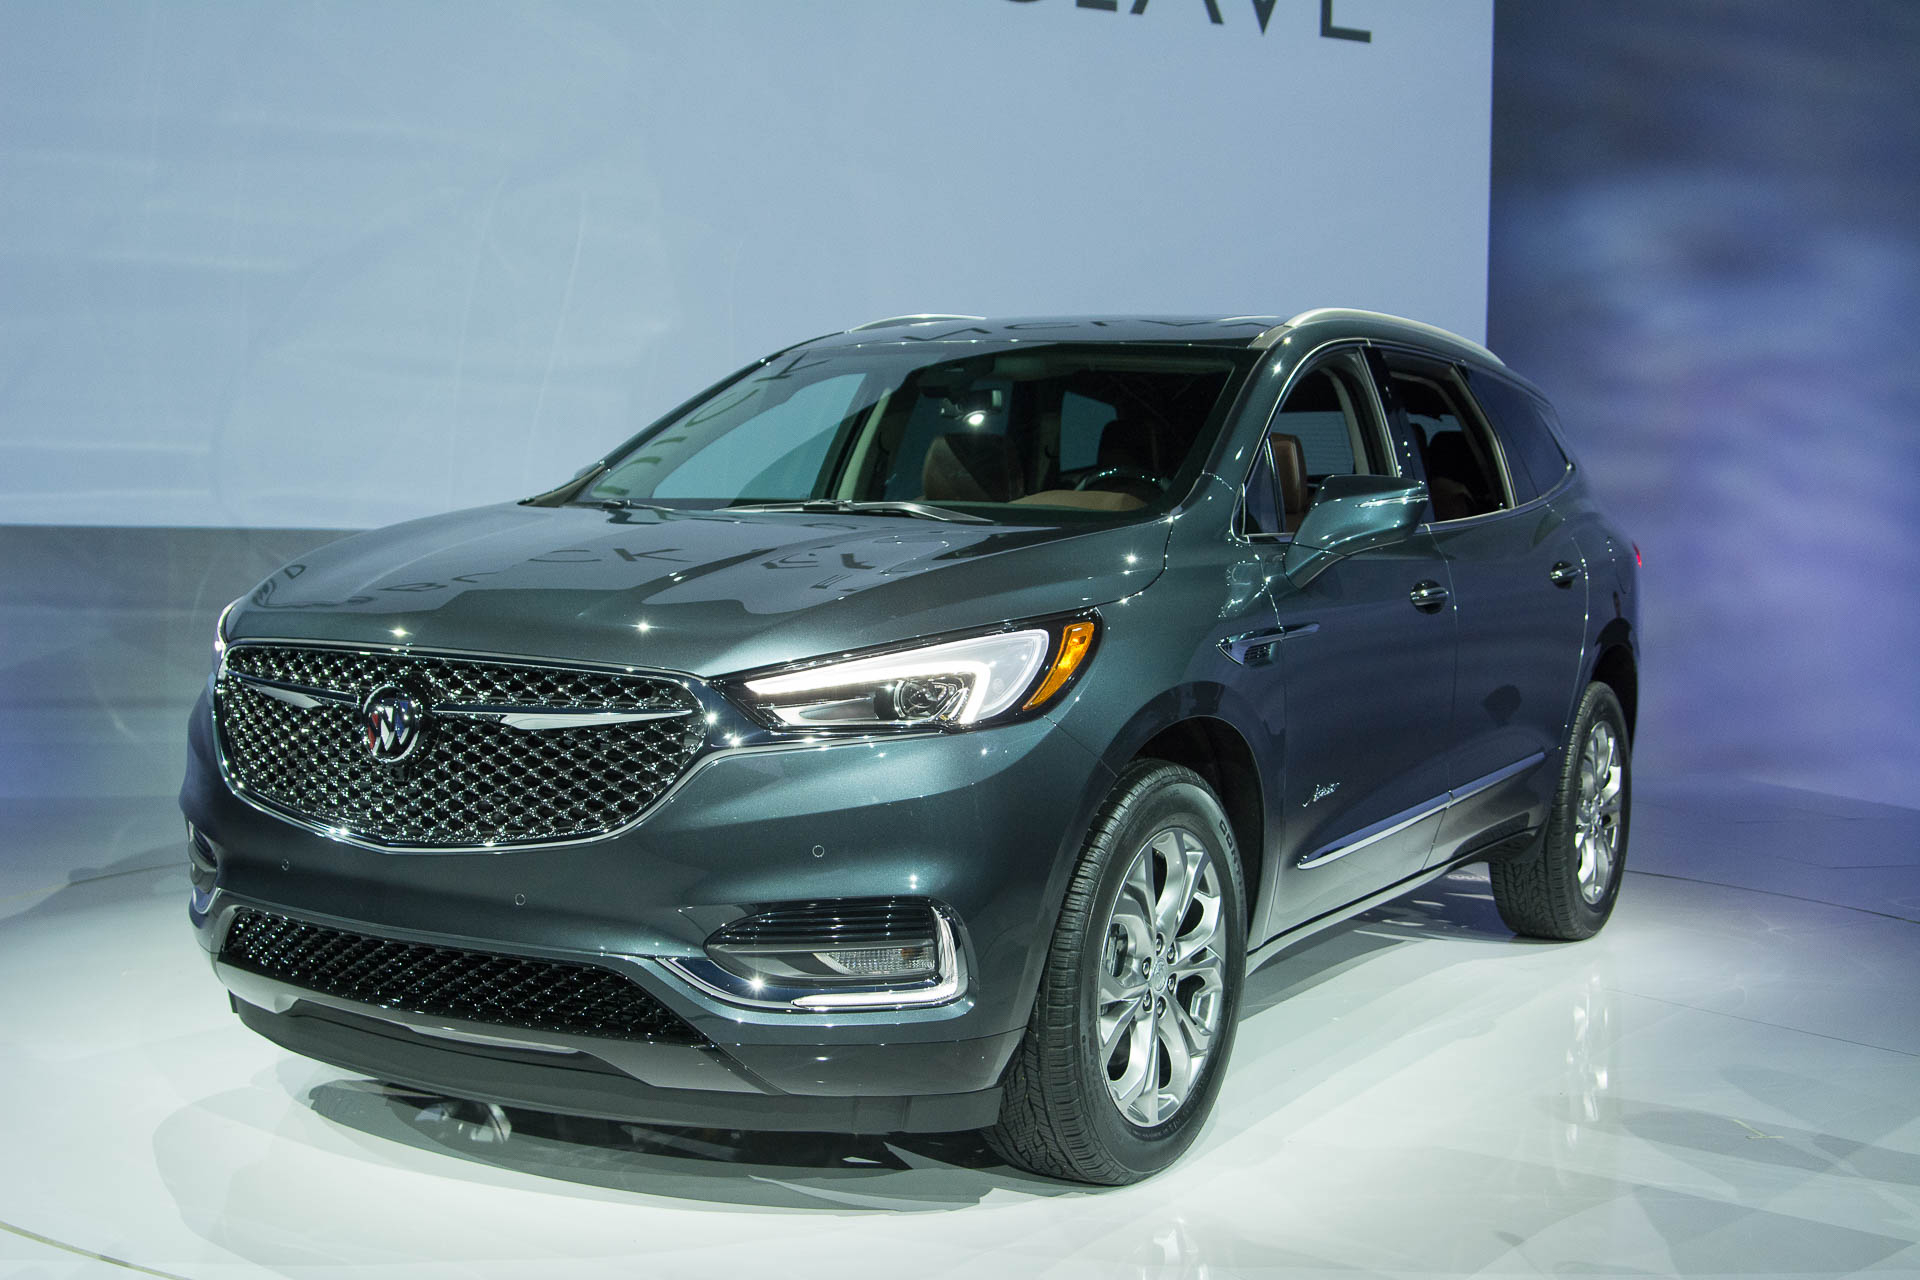 2018 Buick Enclave Revealed With Luxurious Avenir Trim New 2022 Buick Enclave Trim Levels, Transmission, Towing